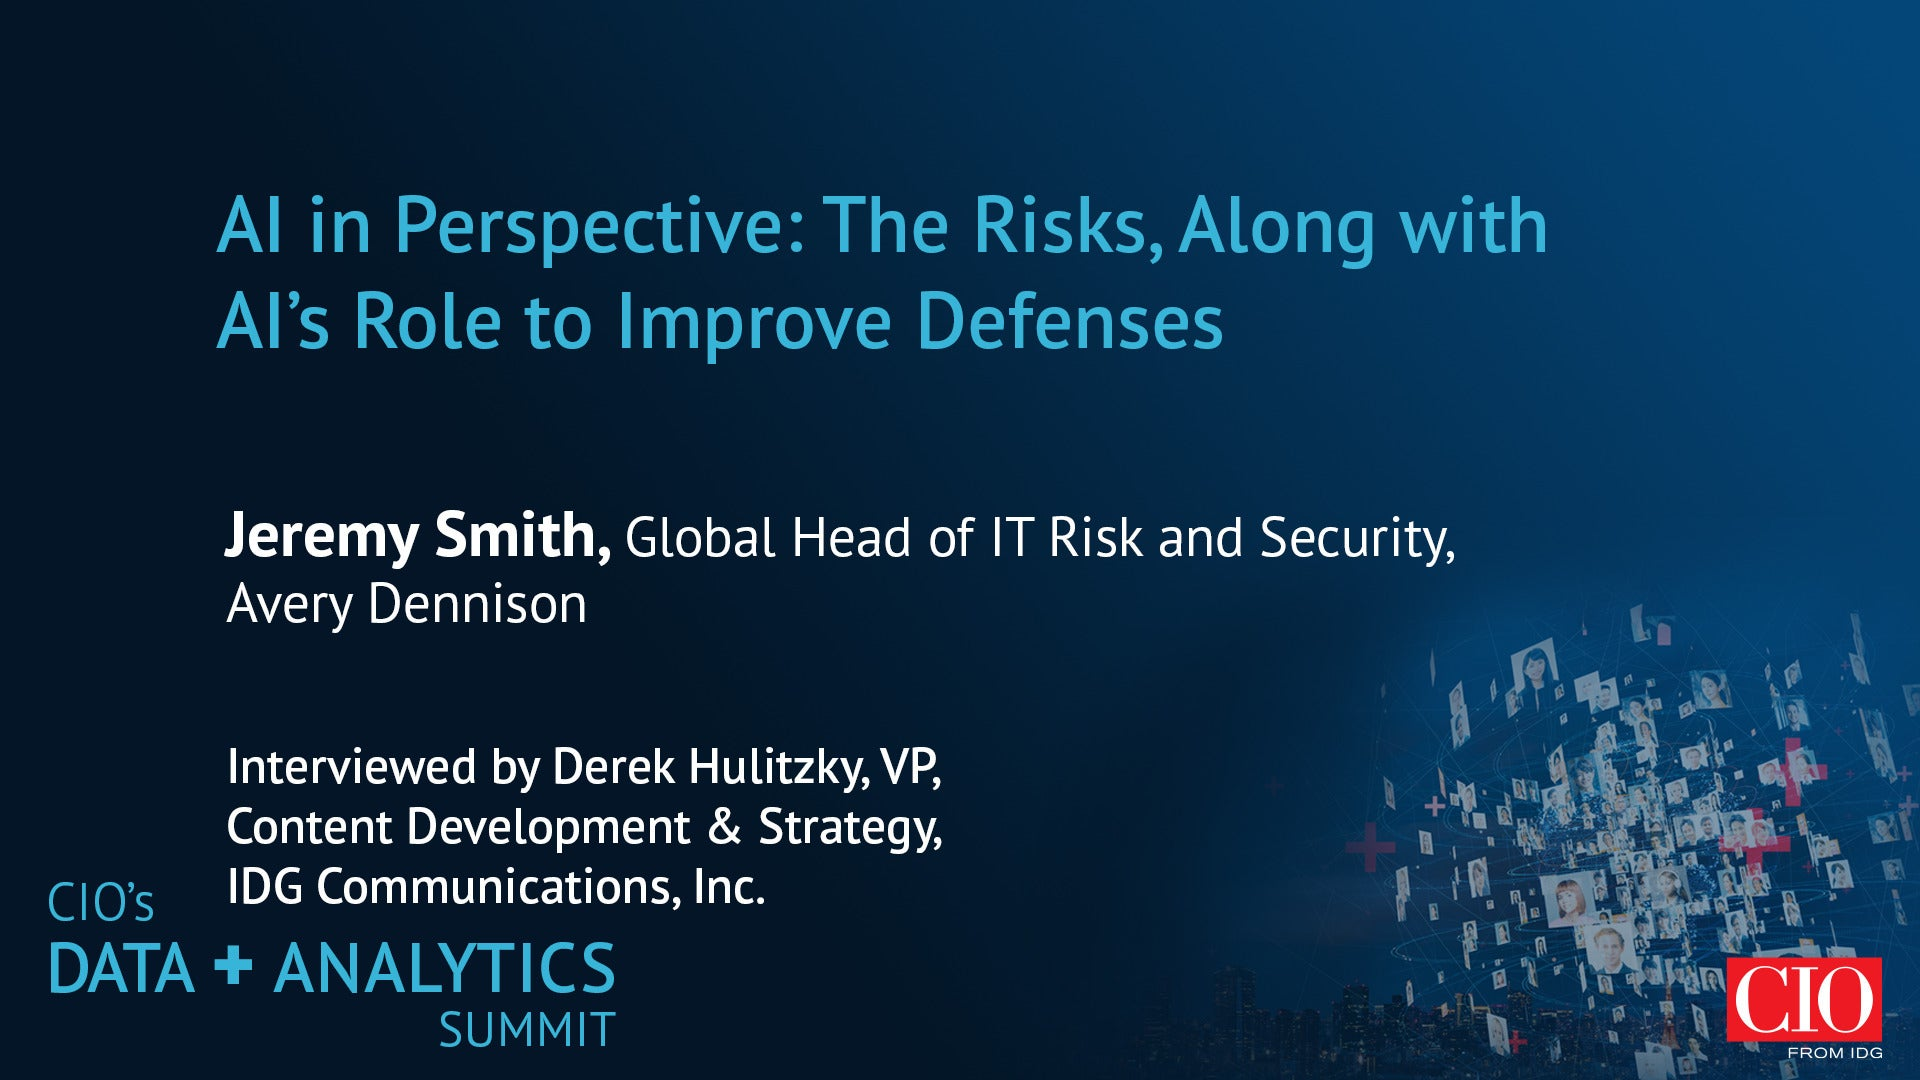 AI in perspective: The risks, along with AI's role to improve defenses